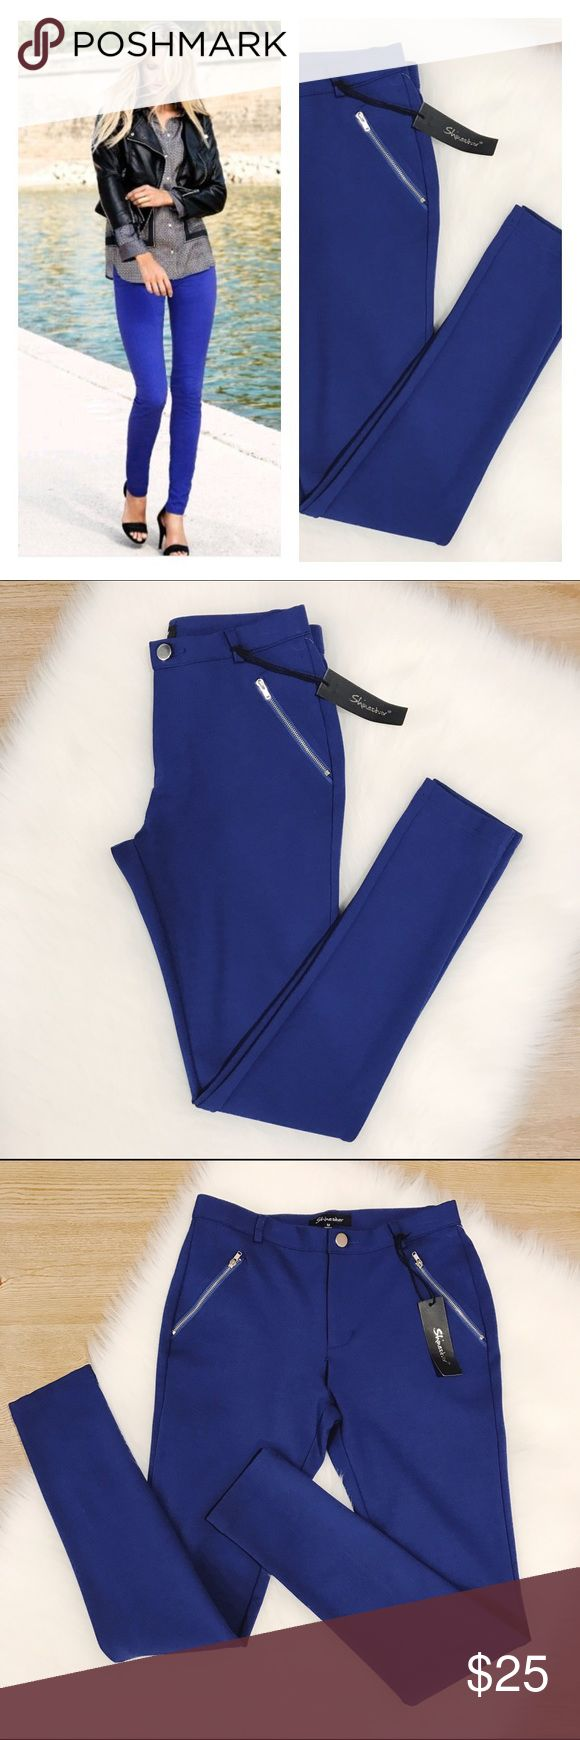 SALEShinestar Royal Blue Stretchy Leggings Gorgeous leggings in royal blue color, btand new with tags, super nice quality material, skinny fit, size Medium, ask for measurements before purchasing. shinestar Pants Leggings